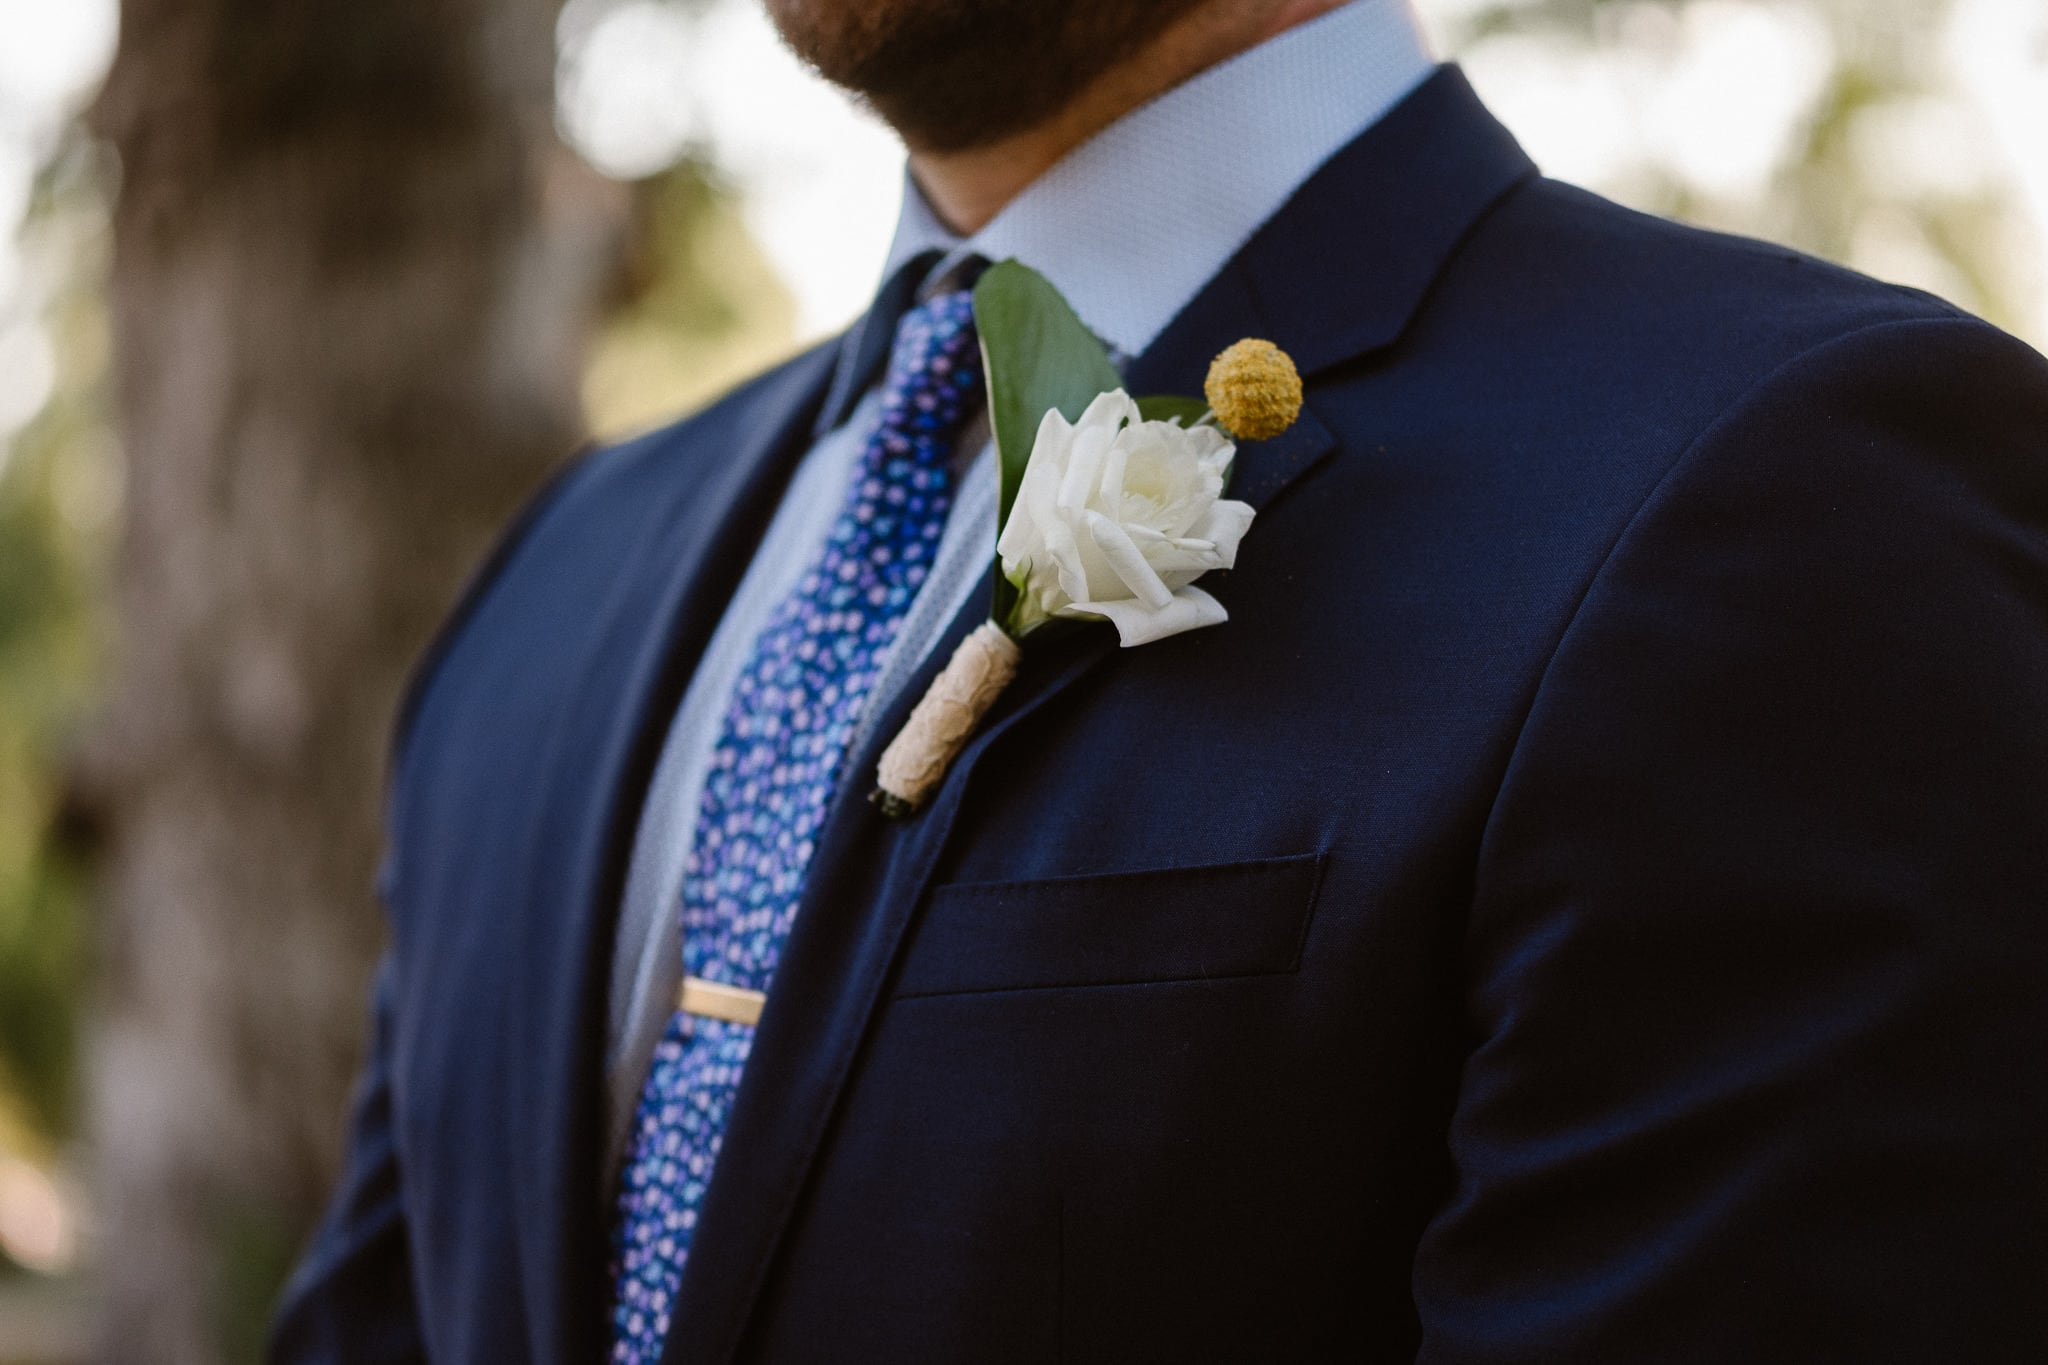 Grant Humphreys Mansion Wedding Photographer, Denver wedding photographer, Colorado wedding photographer, groom portrait, Hugo Boss suit, boutonniere